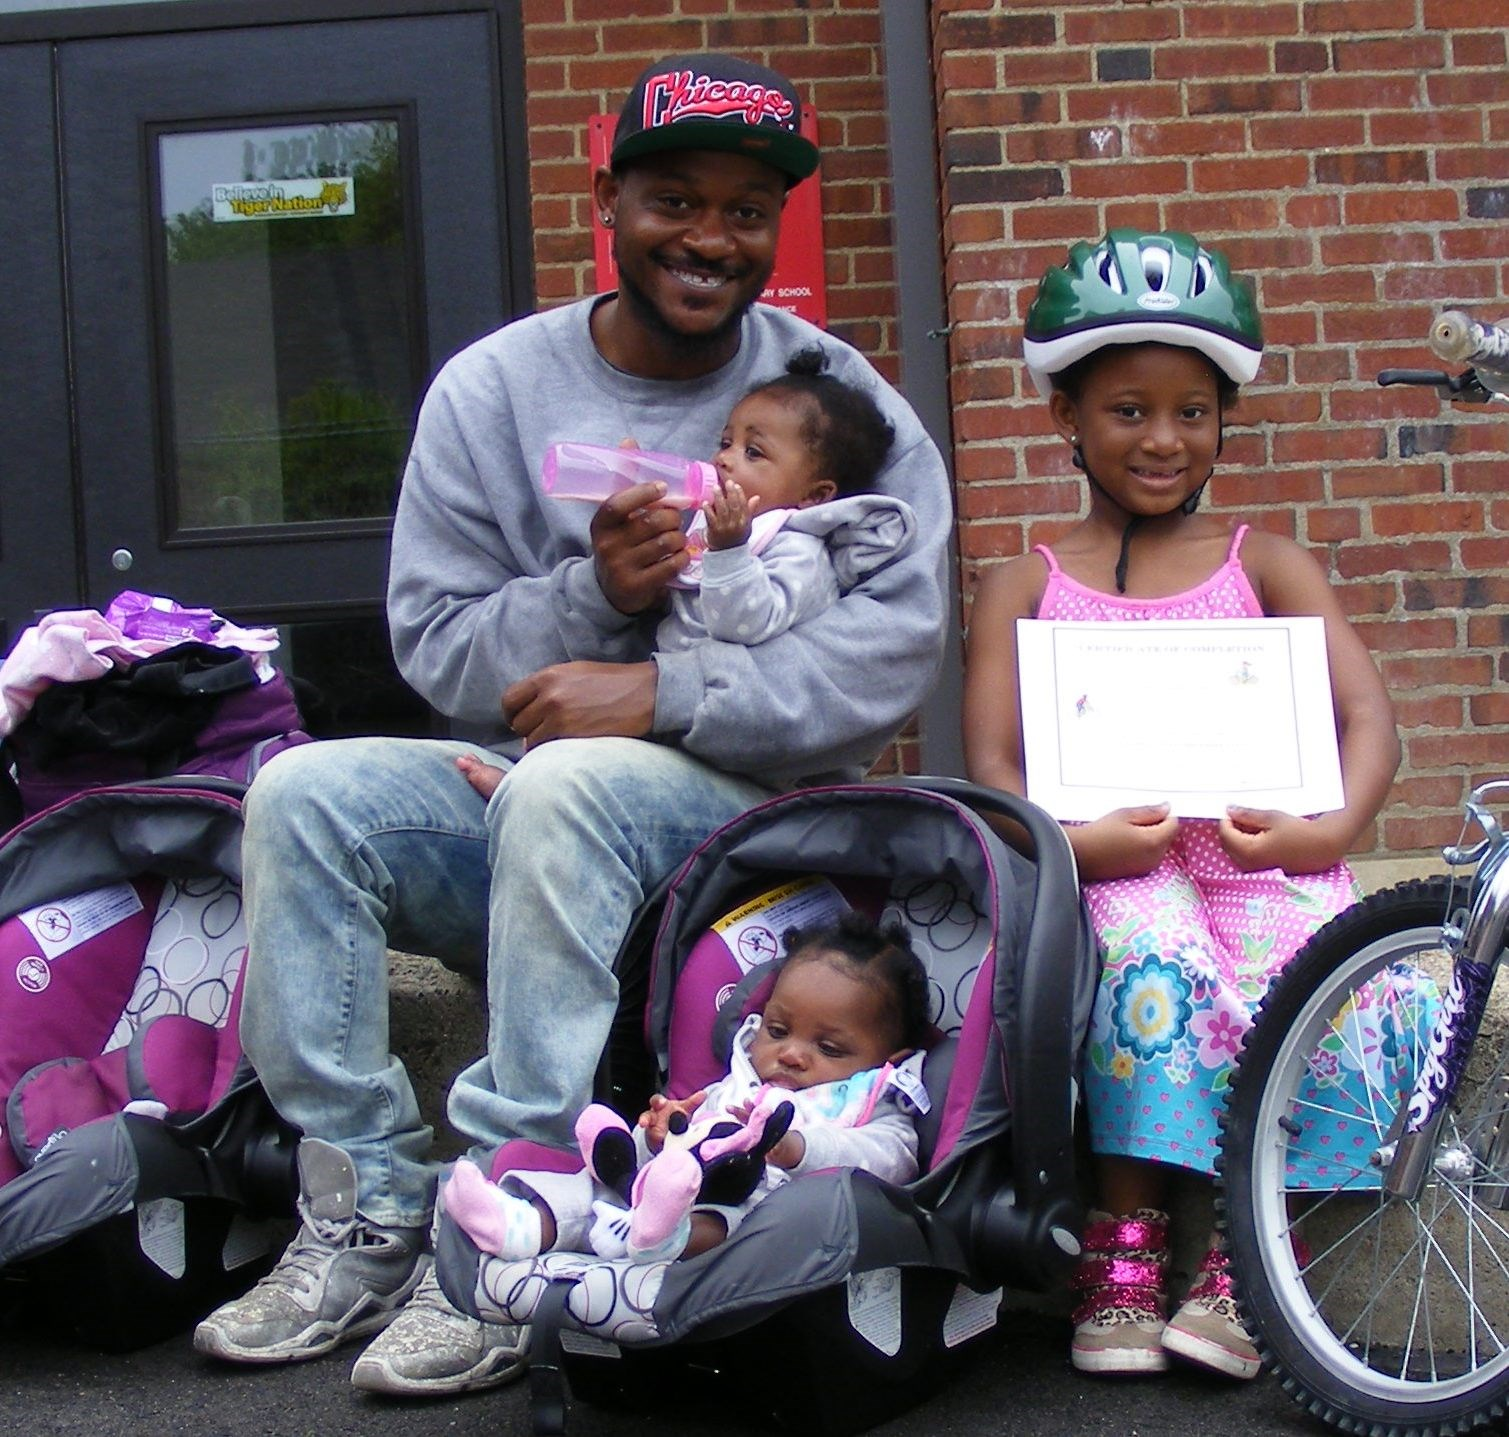 Dad and bike participant - with two future cyclists